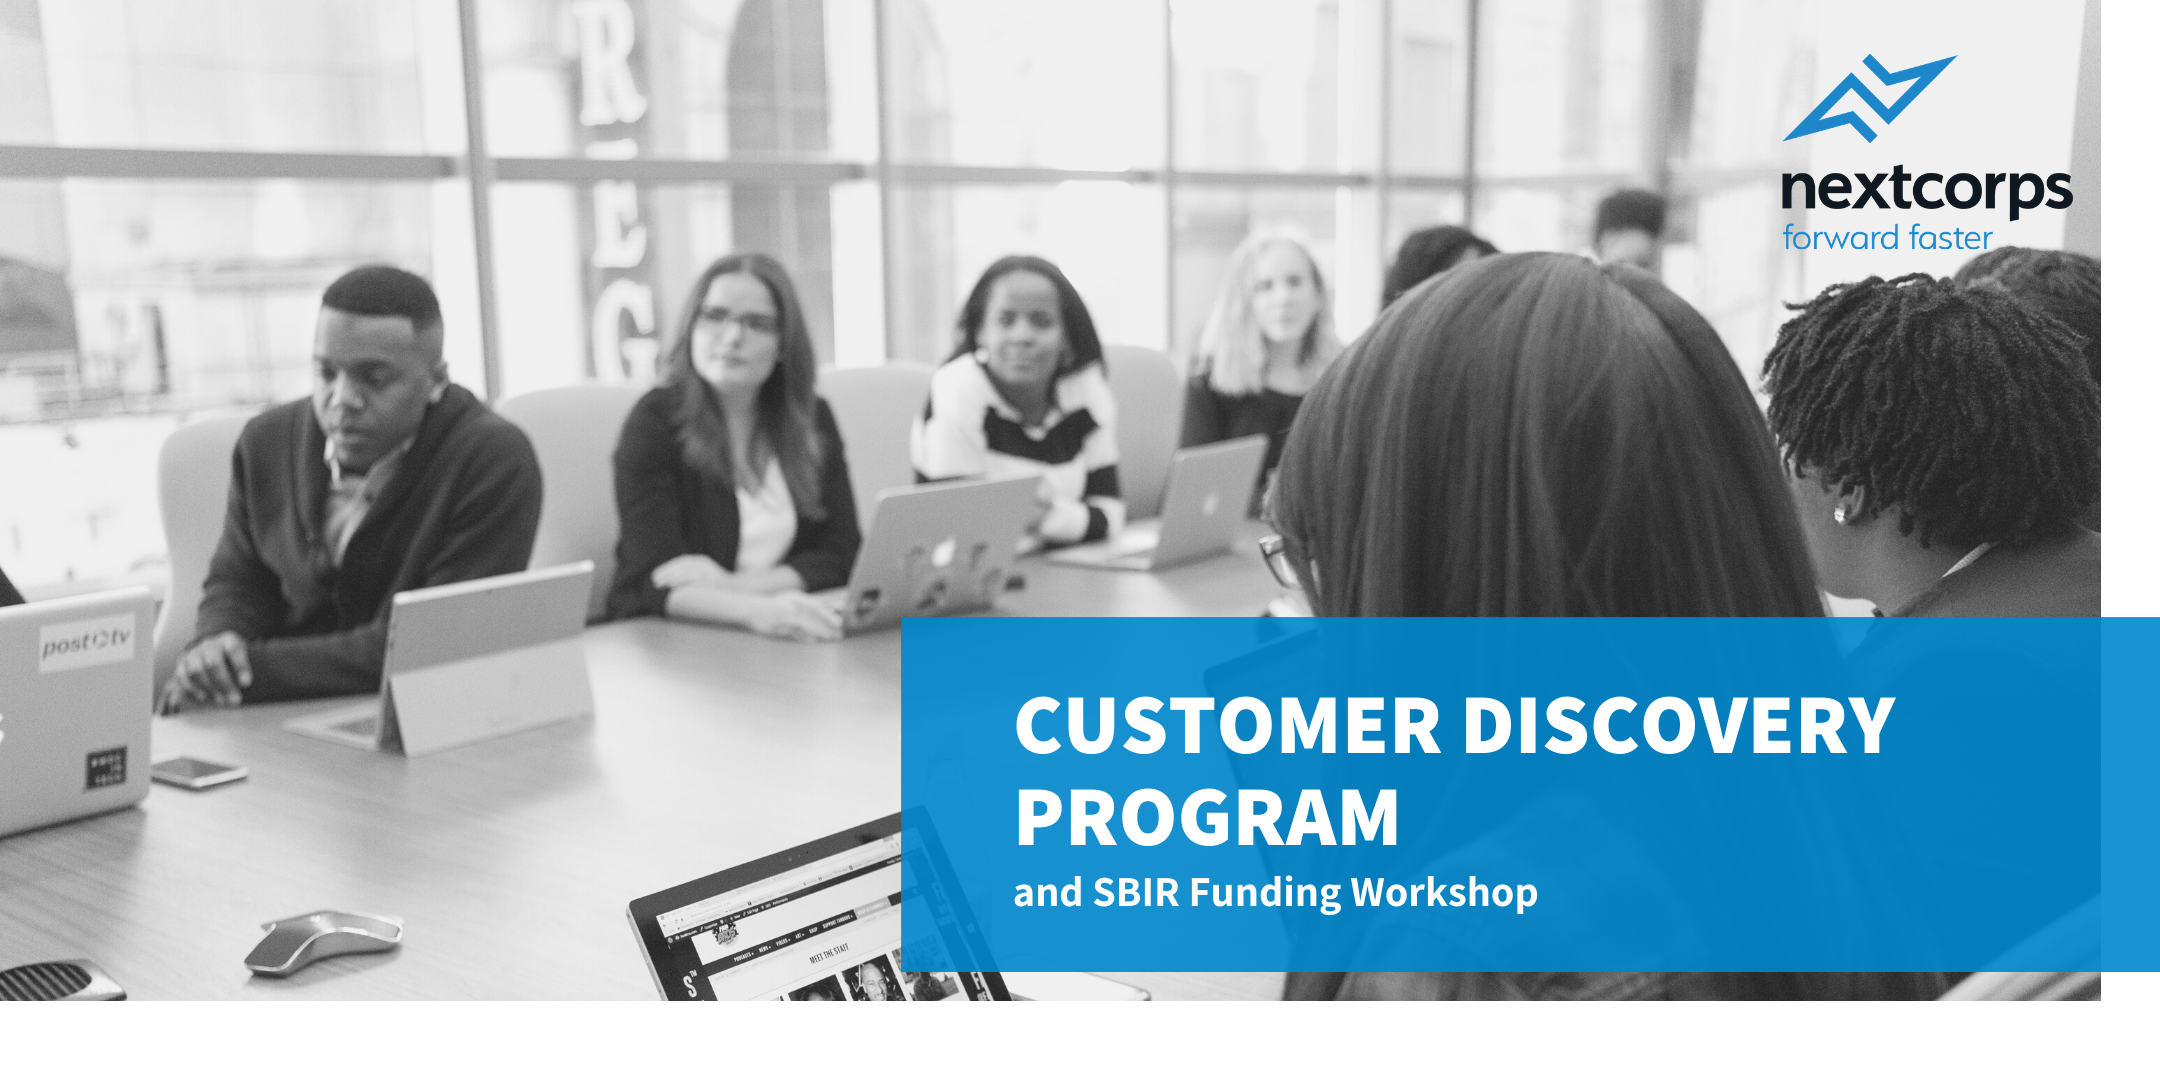 Customer Discovery workshops